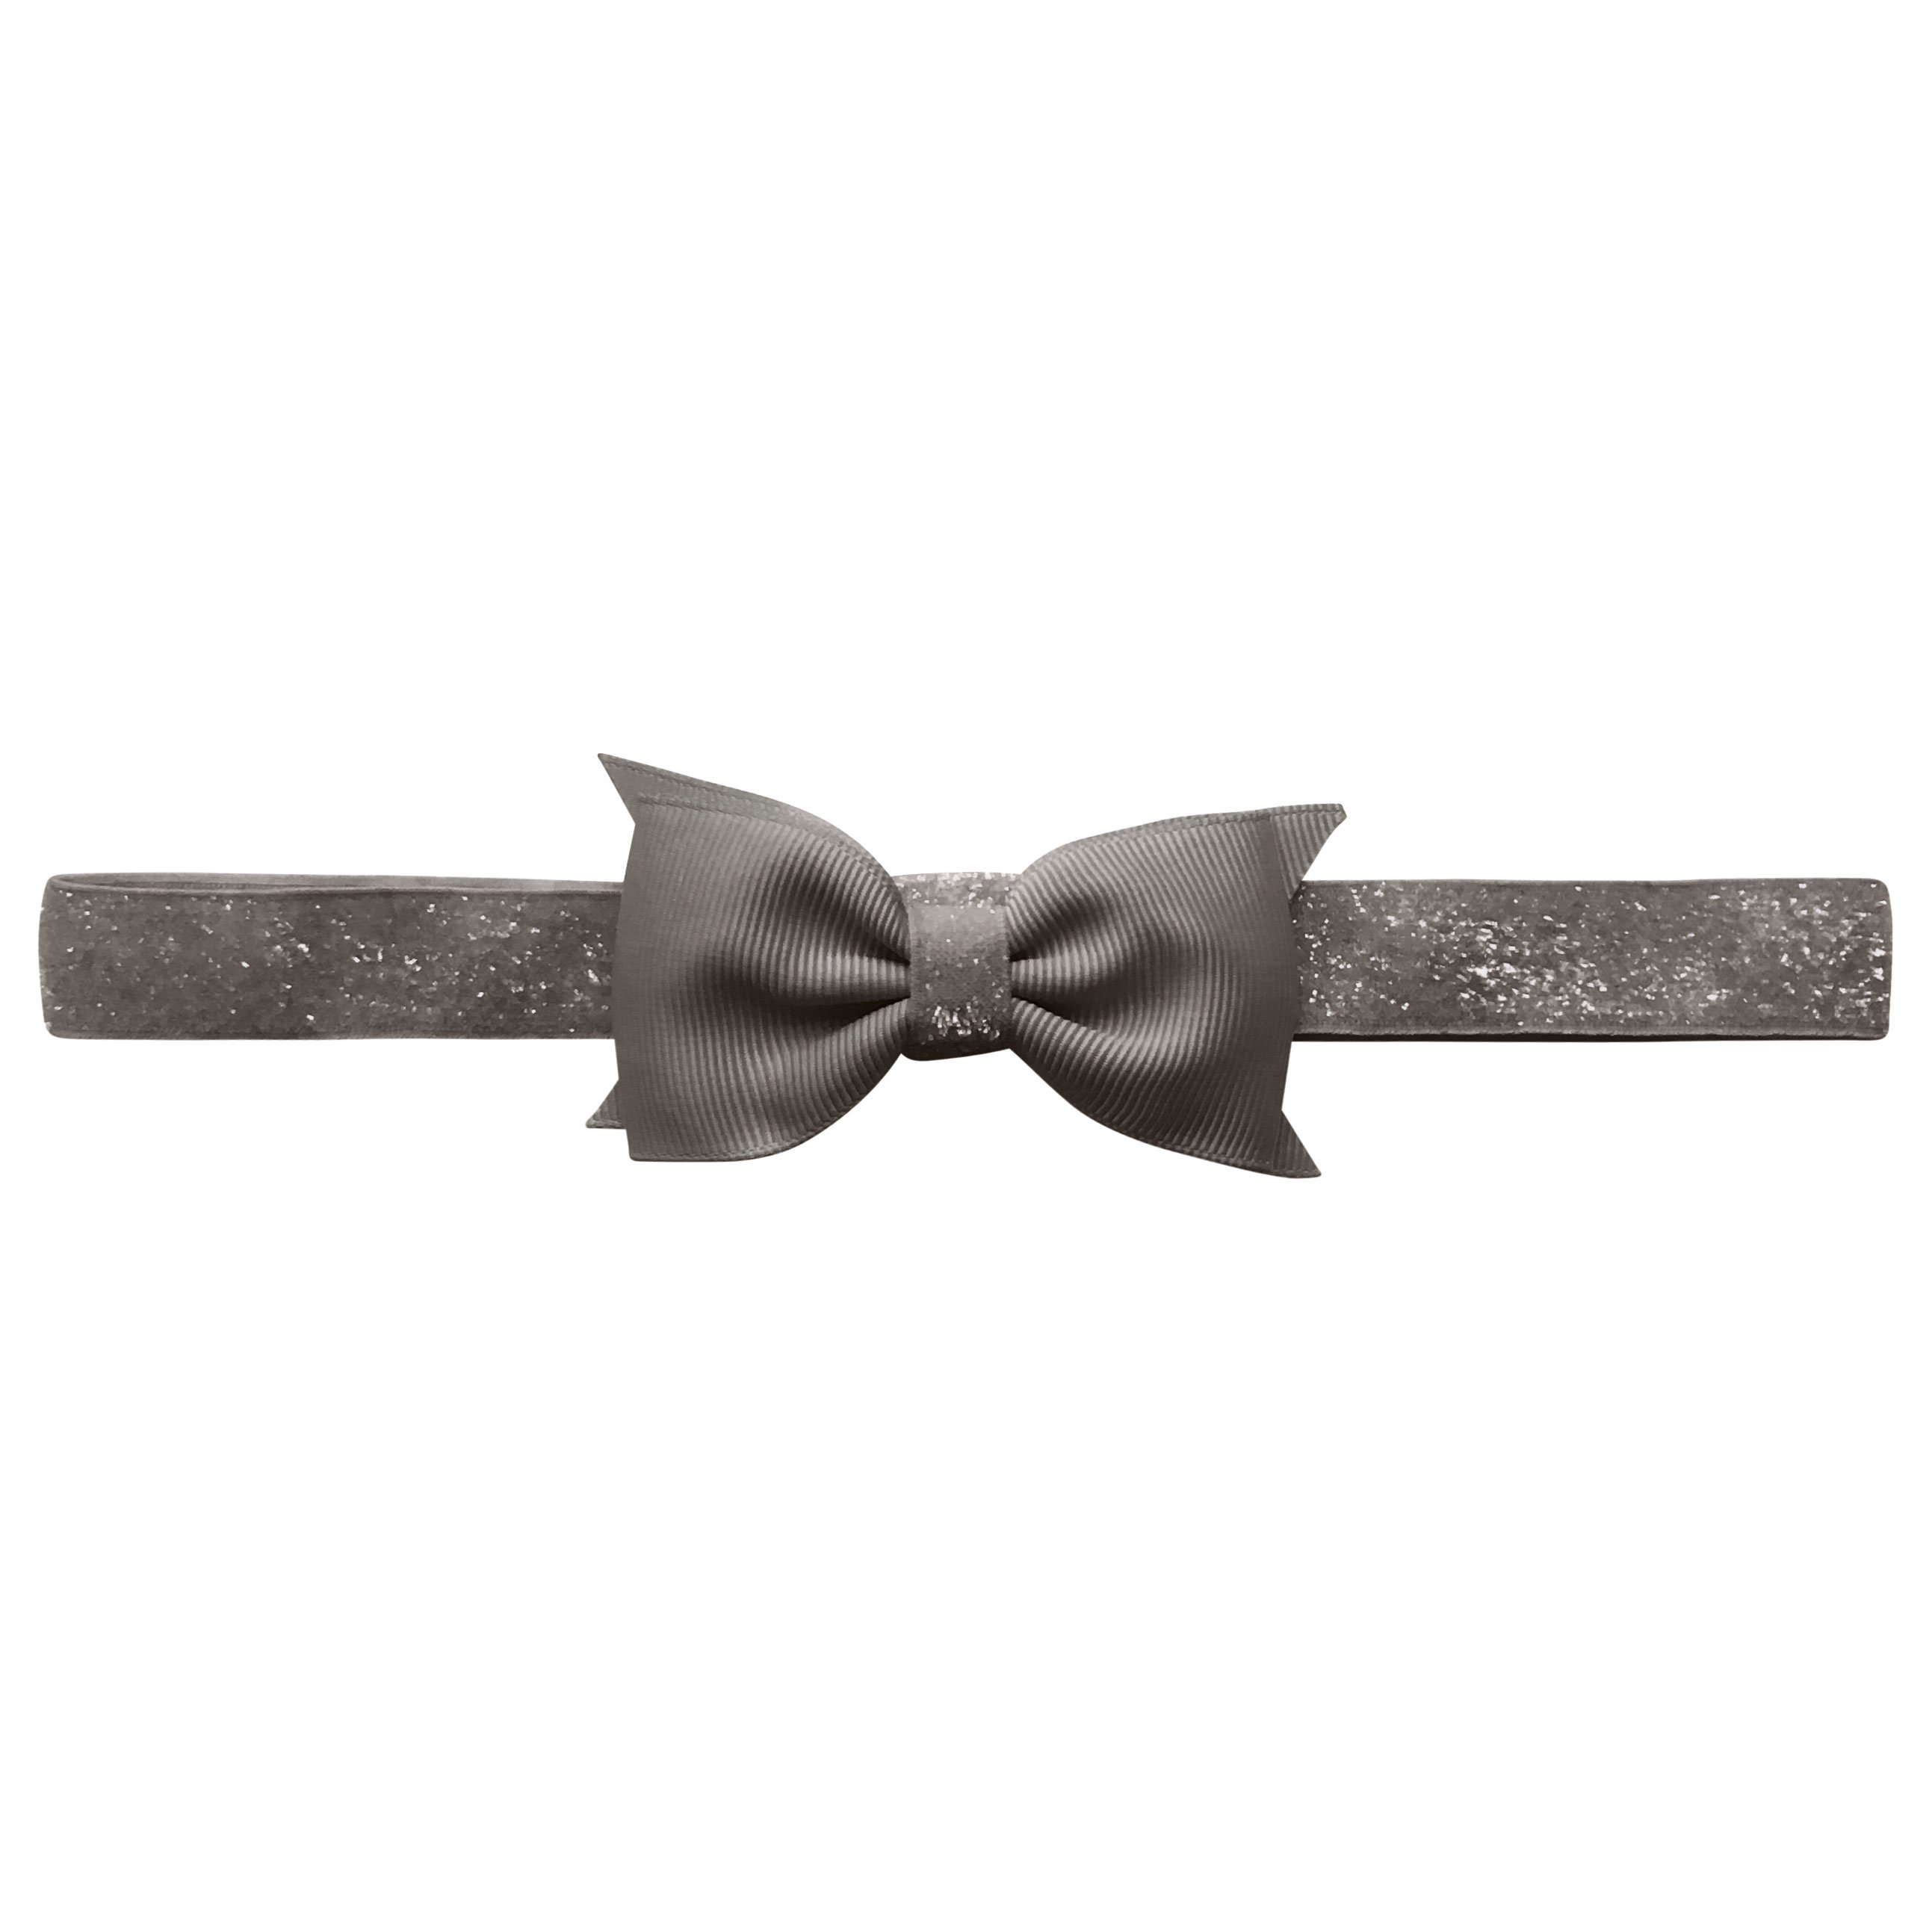 Image of   Double Bowtie Milledeux bow - elastic hairband - metal grey colored glitter